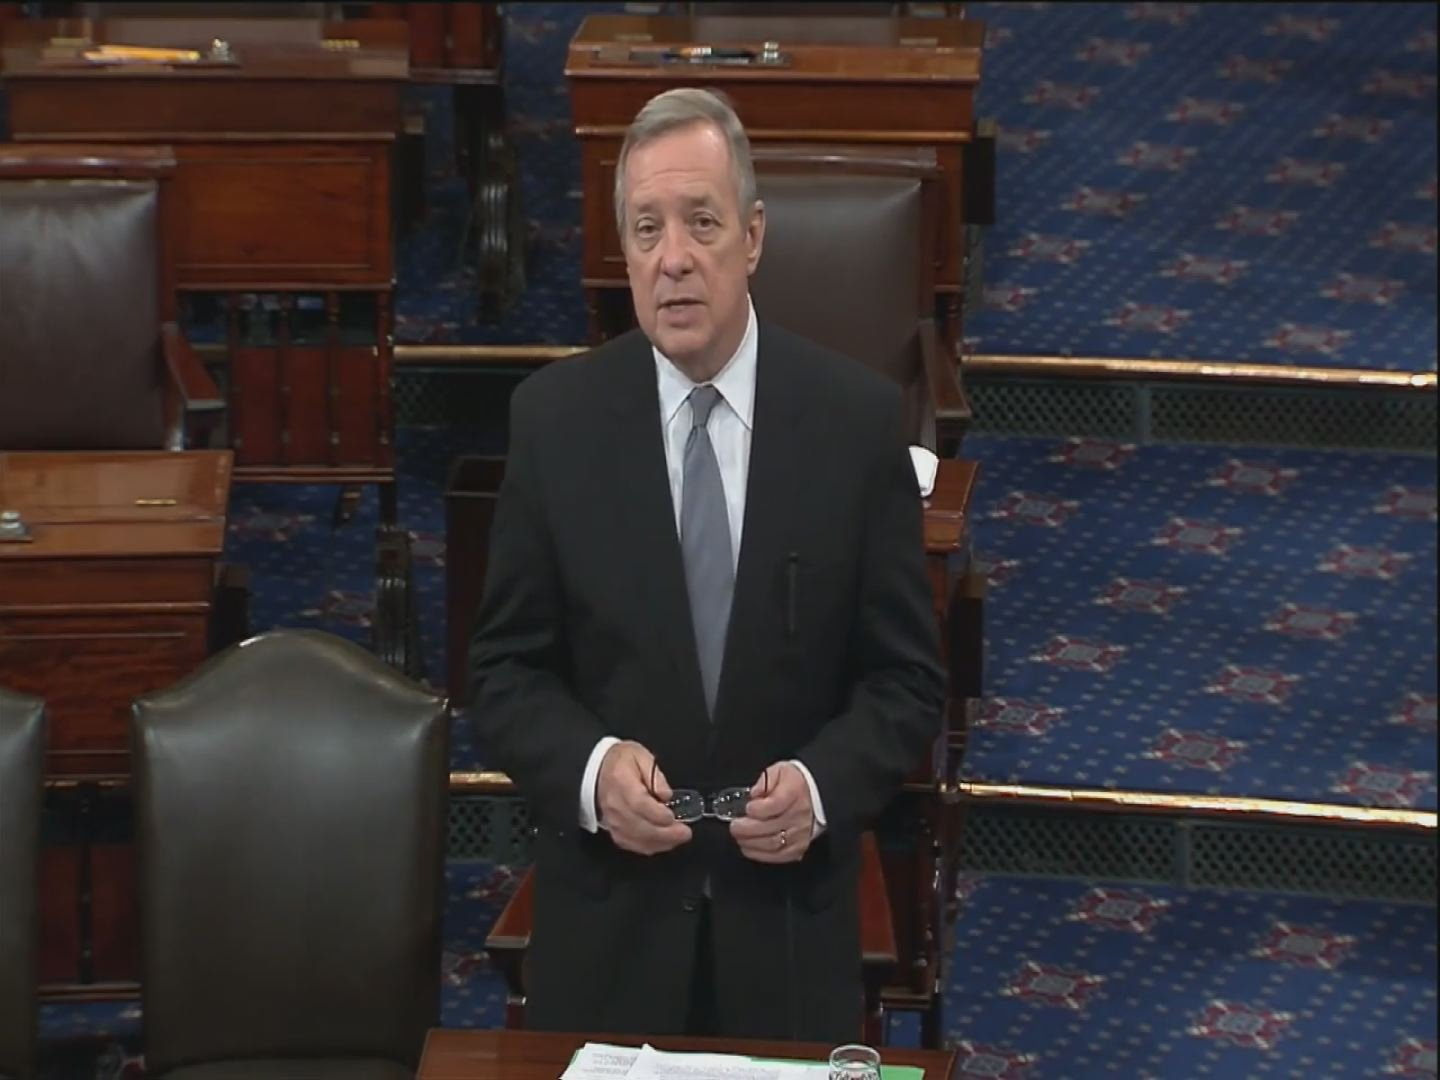 Illinois Sen. Dick Durbin